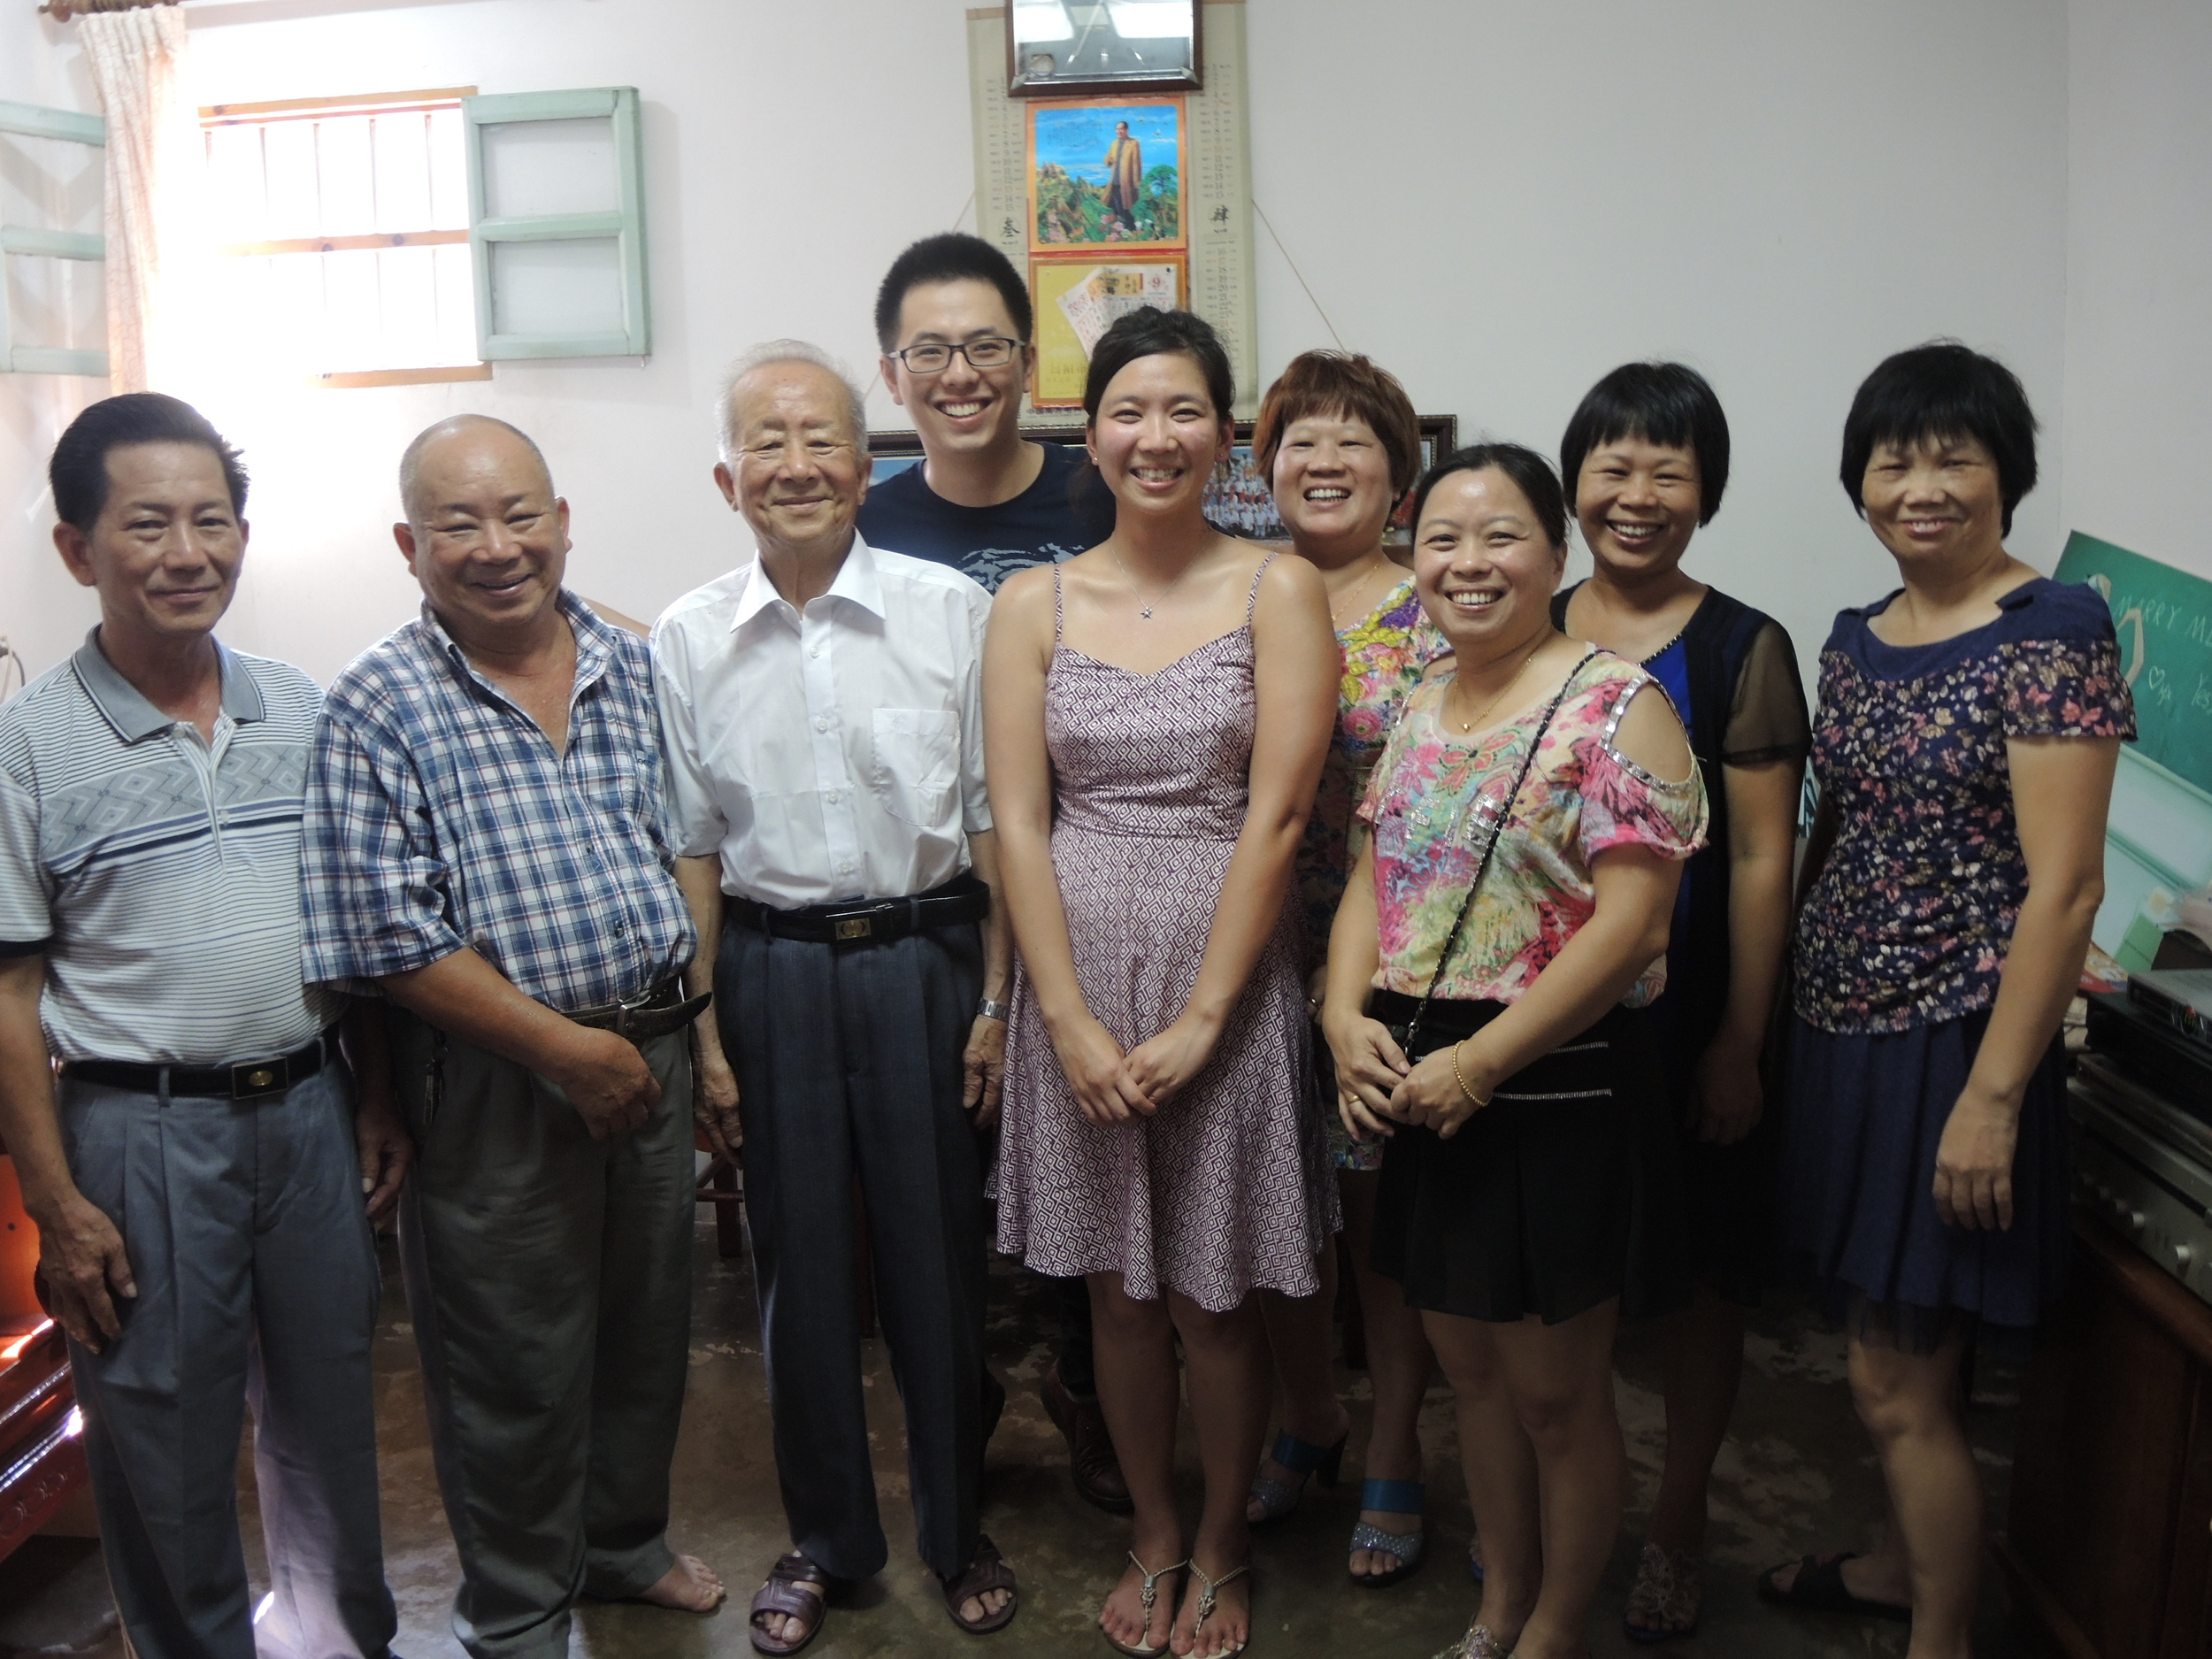 Family group photo inside third granduncle's home after some kung fu cha